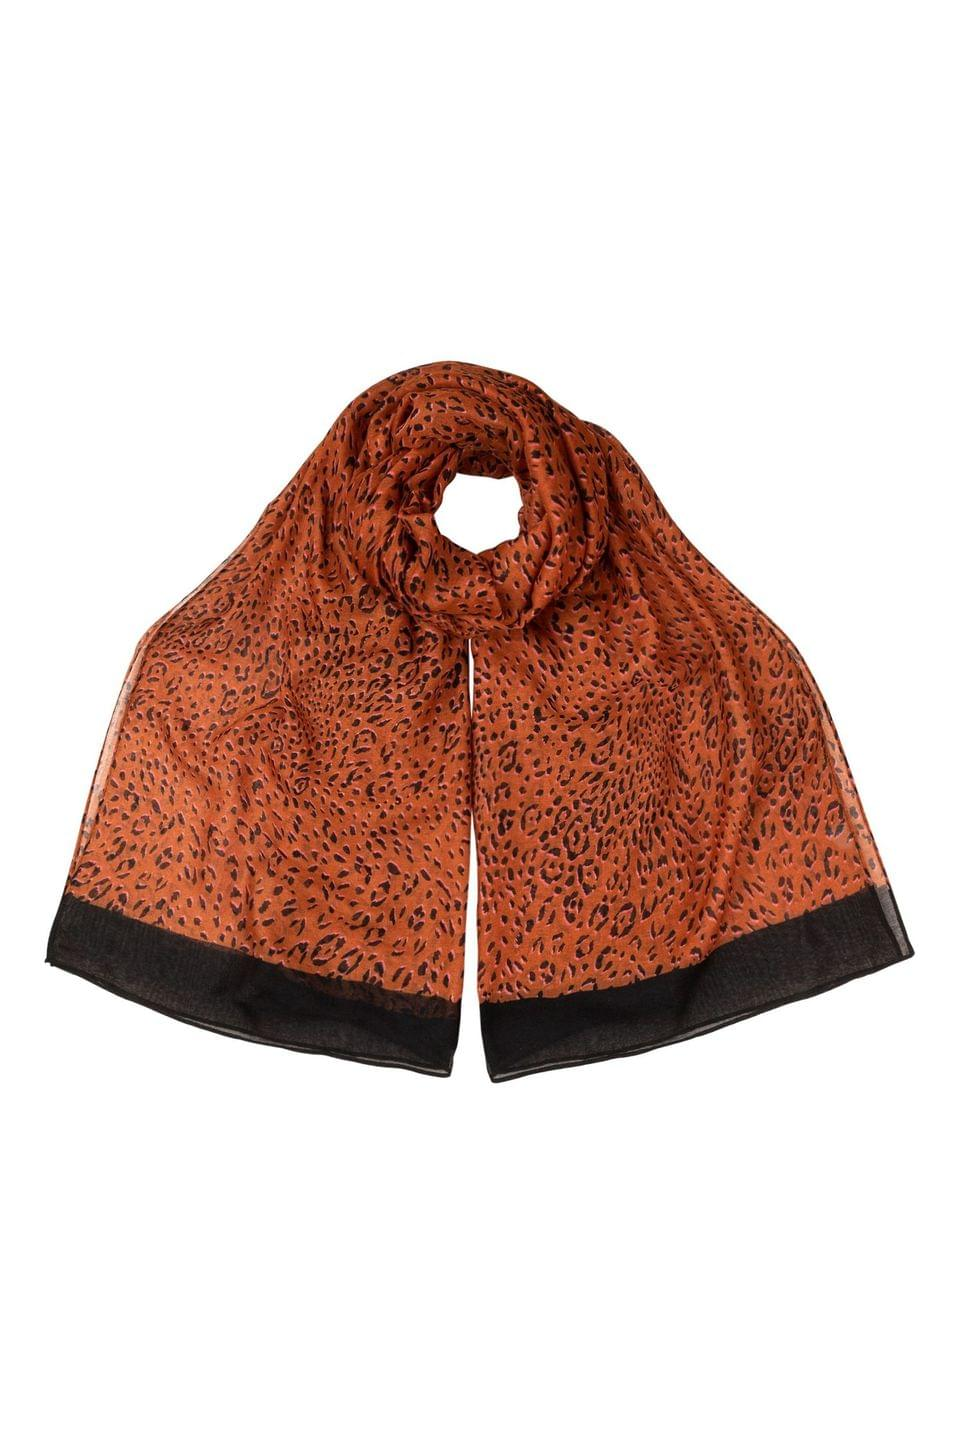 Women's Oliver Bonas Cute Cheetah Brown Lightweight Scarf